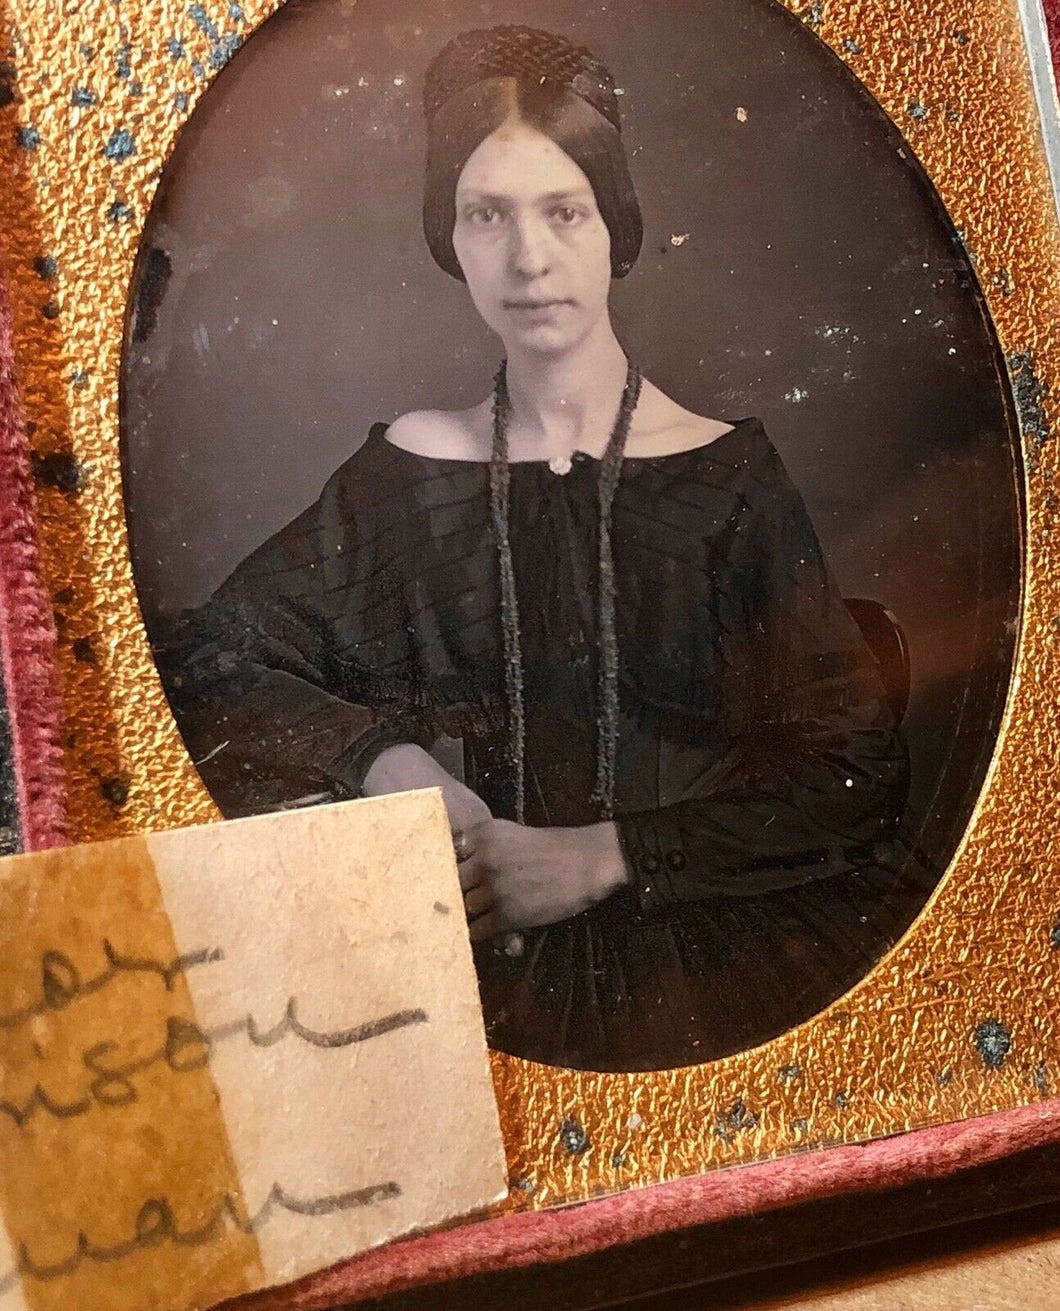 ID'd Woman Amazing Braided Hair 1840s Daguerreotype ~ Plumbe Genealogy Mourning?